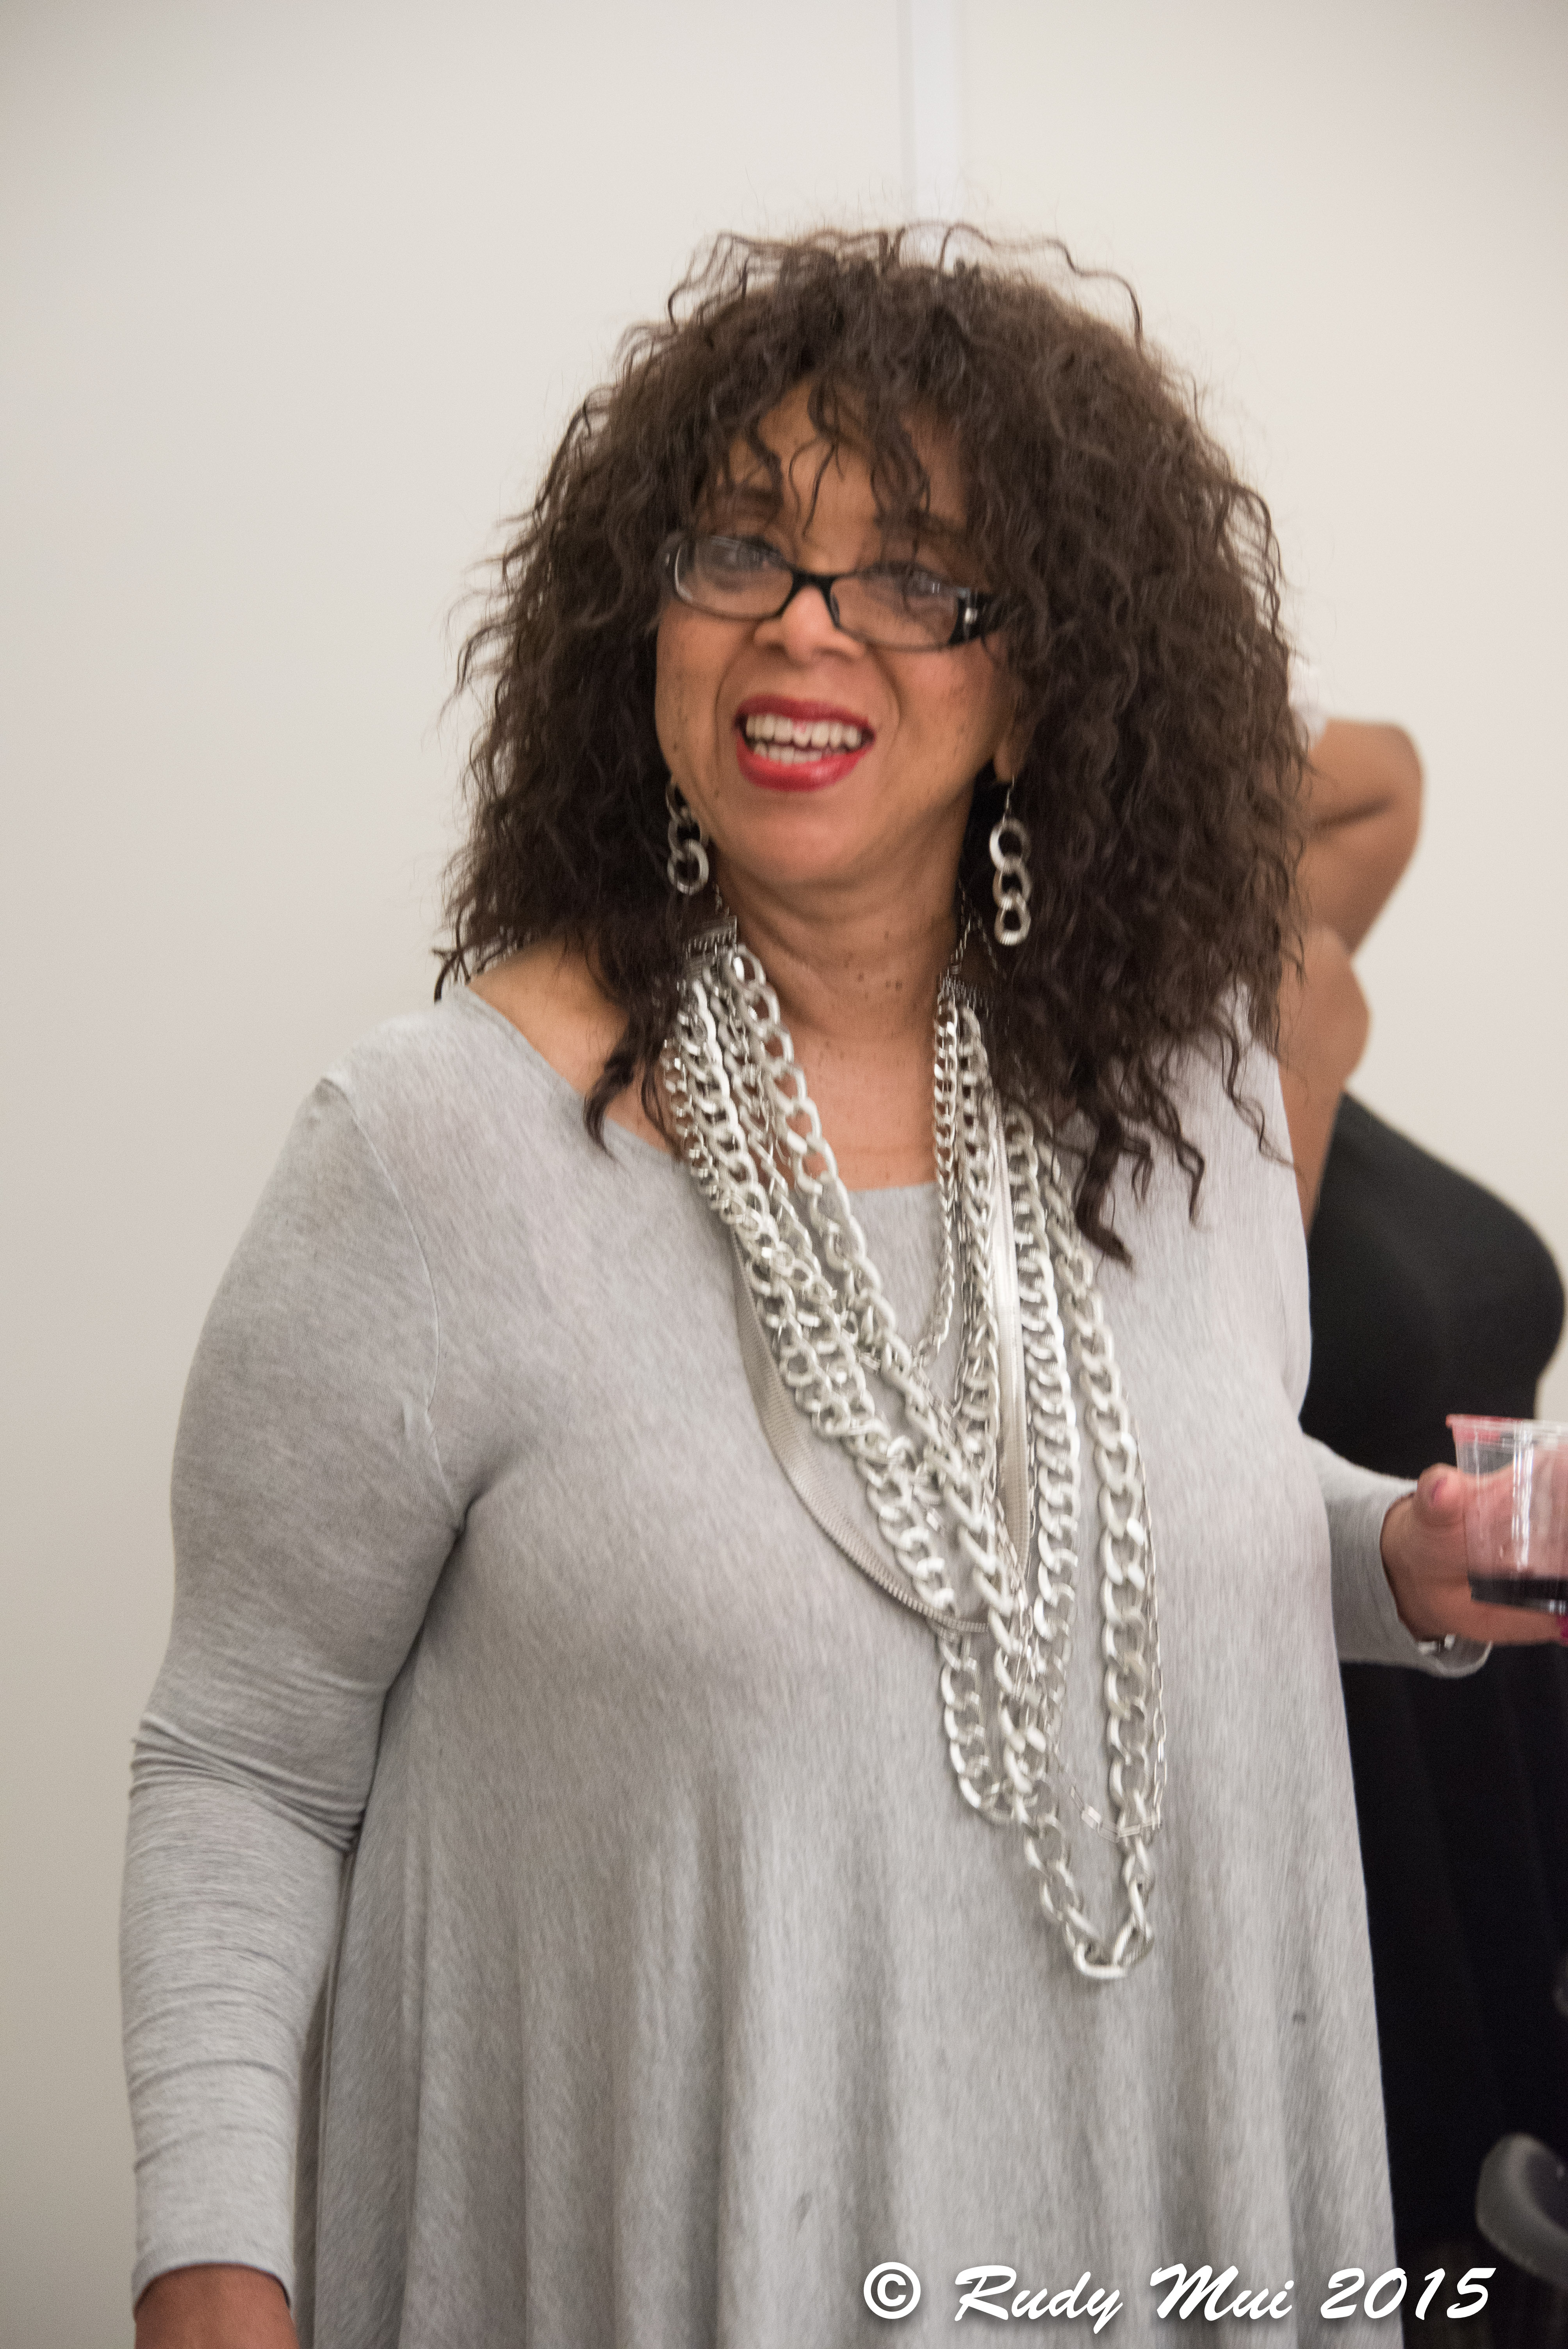 Director Yvonne Phillips-Dupree